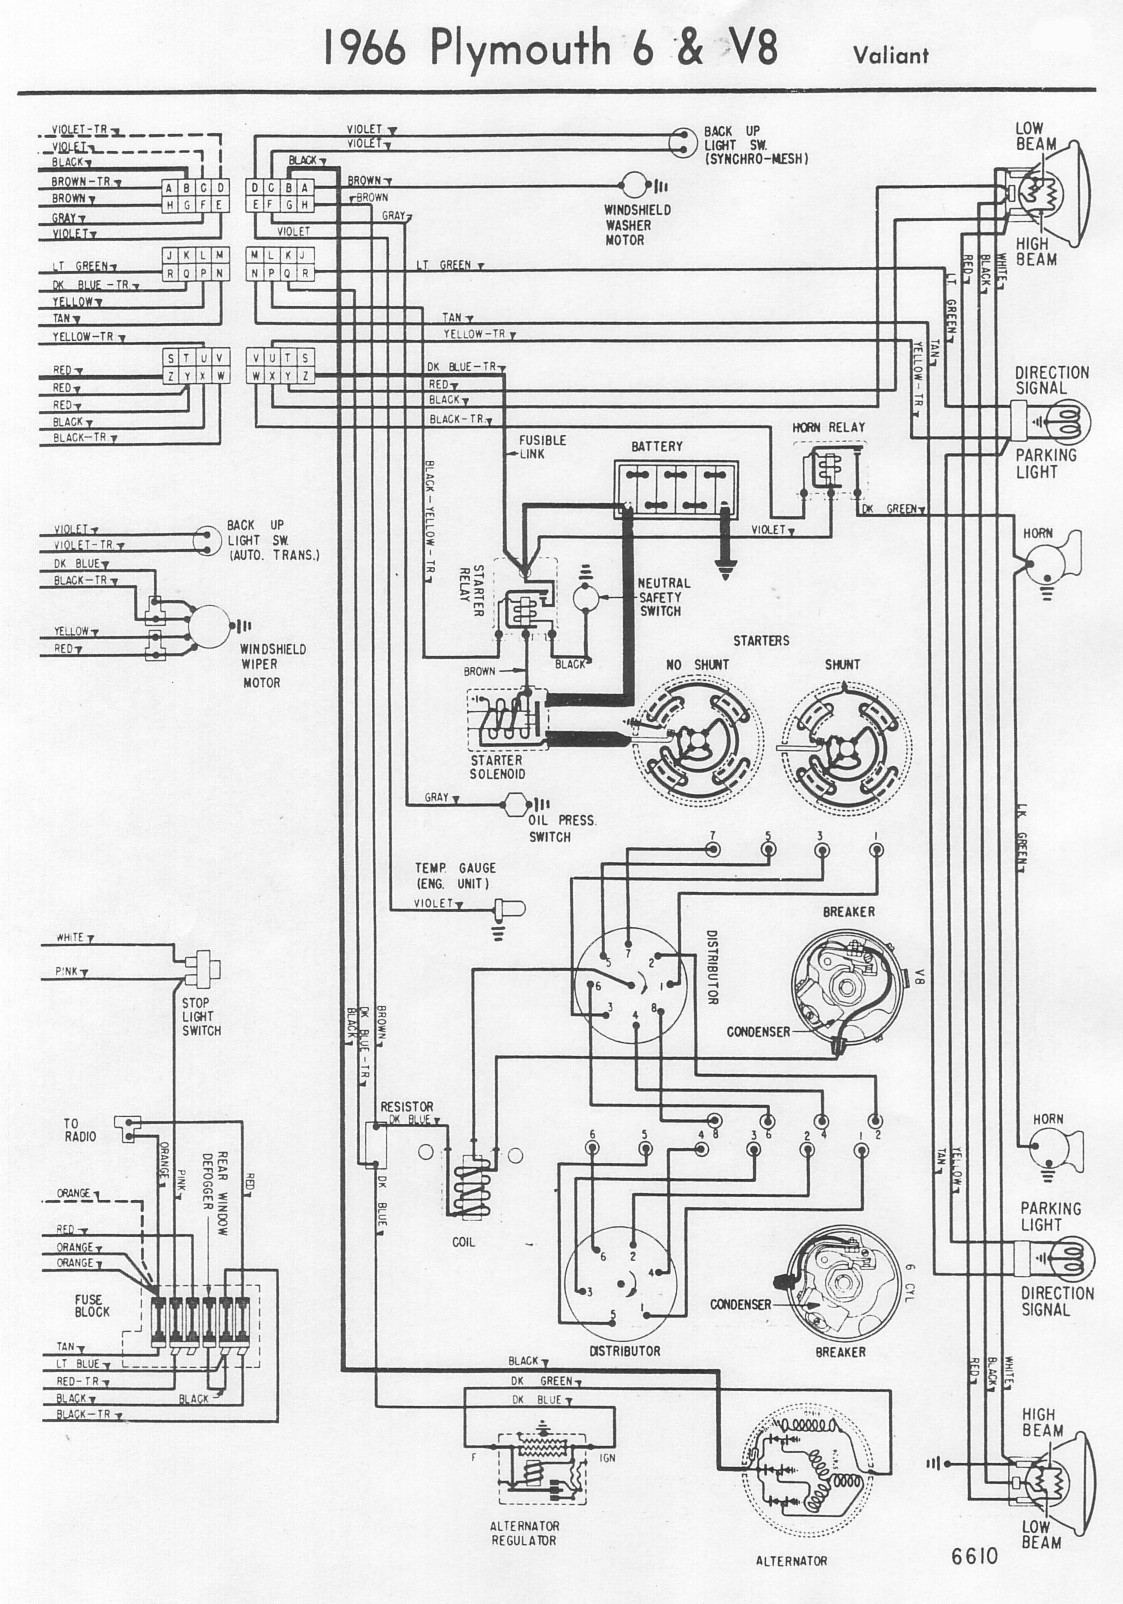 66ValiantB wiring diagrams 64 valiant wiring diagram at bayanpartner.co